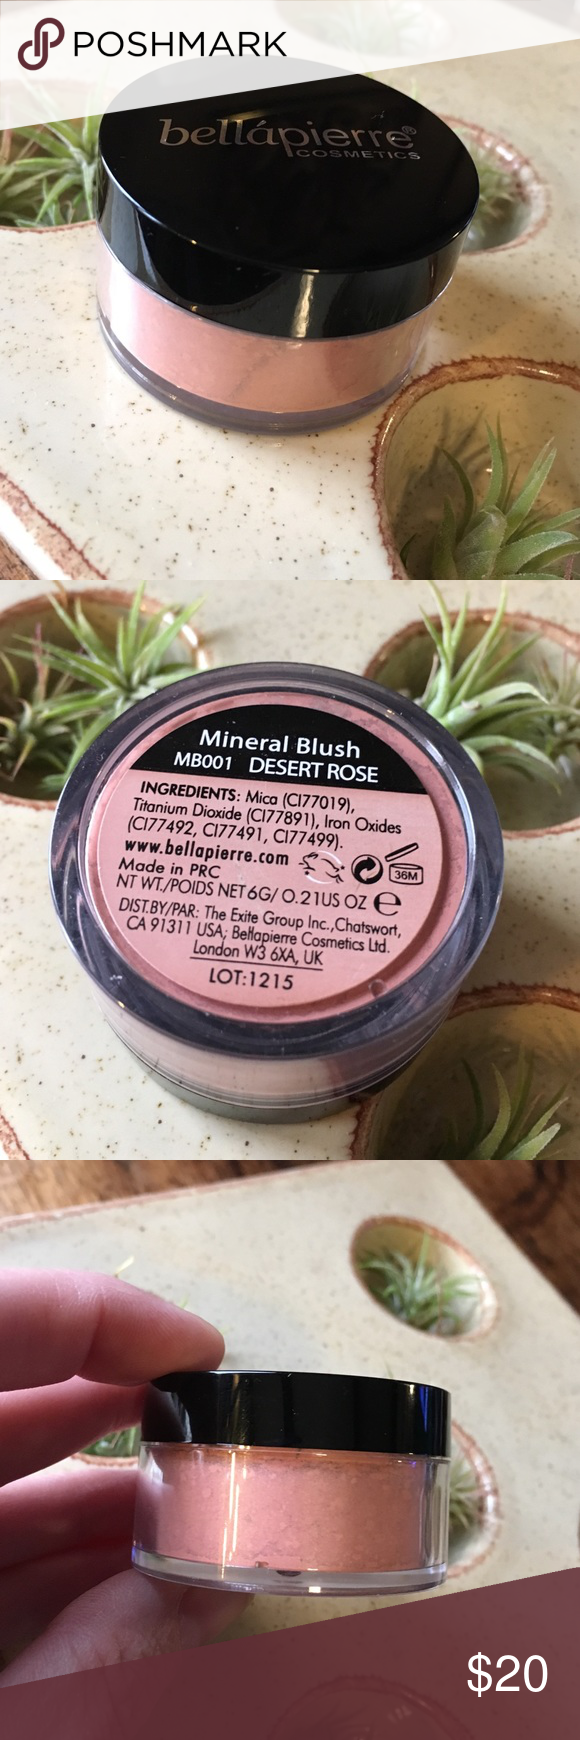 "New Bella Pierre mineral Blush in Desert Rose. New Bella Pierre mineral Blush in Desert Rose. Described on their site as ""Peachy soft pink."" Never been opened.  I'm open to reasonable offers and give bundle discounts! ☮️✌️️ bella pierre Makeup Blush"